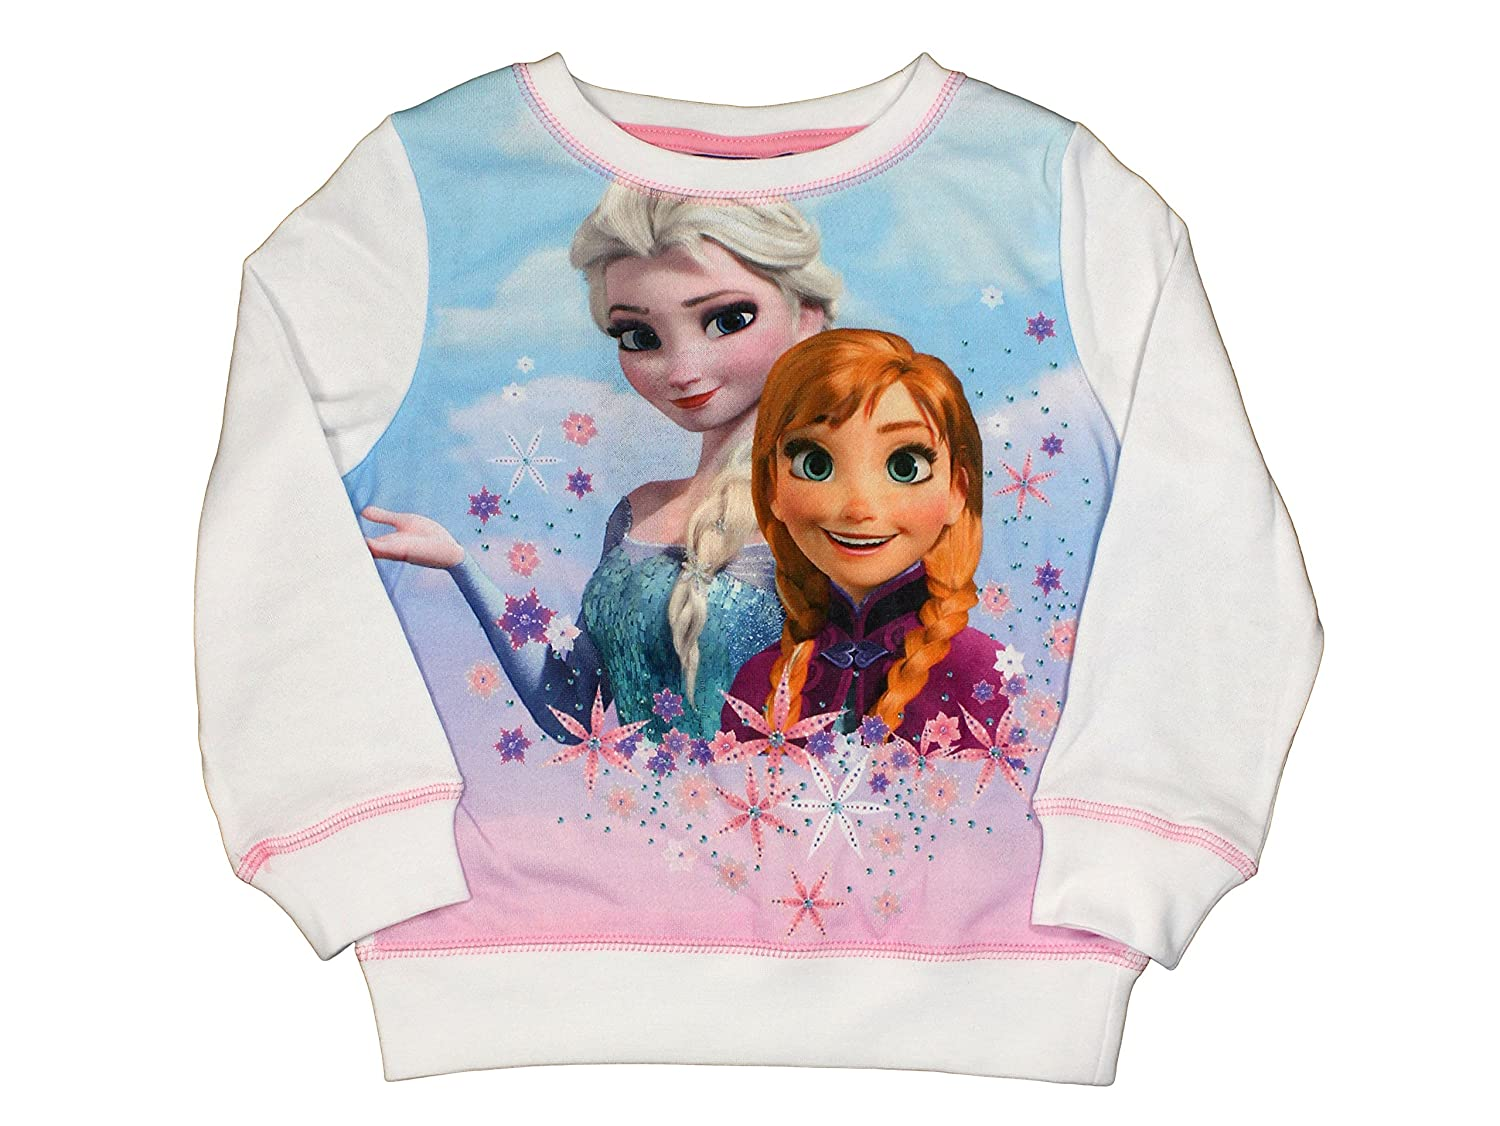 Frozen Official Girls Sweater 8Years White: Amazon.es: Ropa y ...